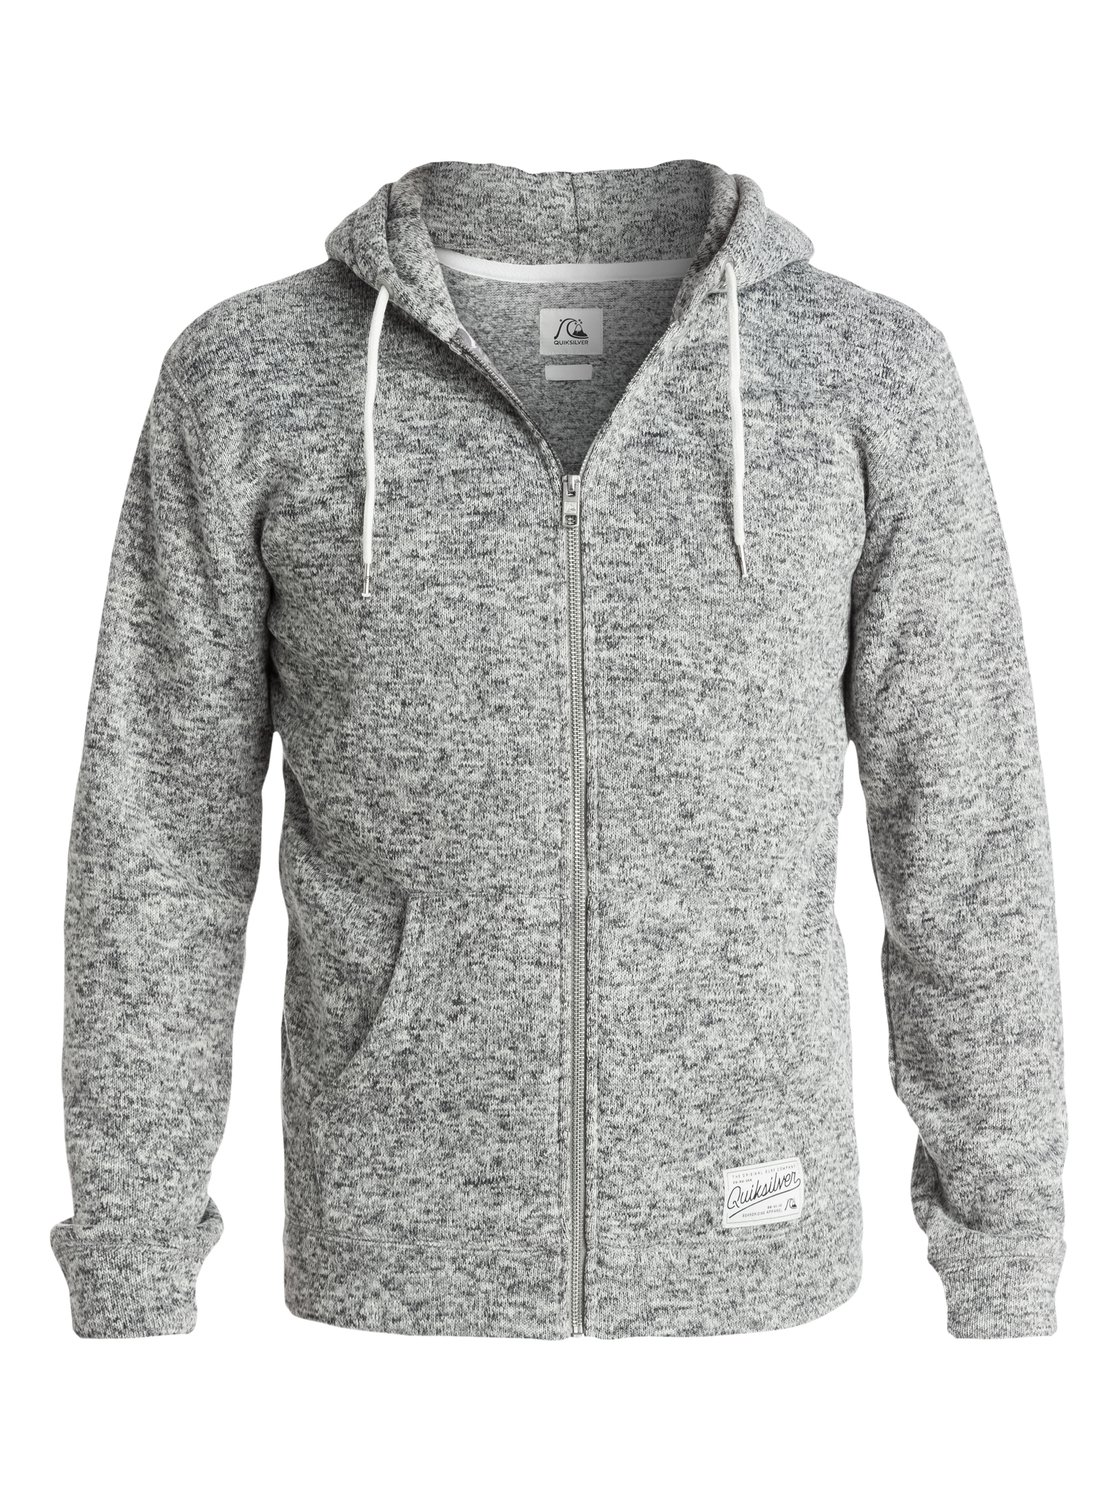 888701387312 Zip Keller Up Quiksilver Hoodie Fleece nfnapq